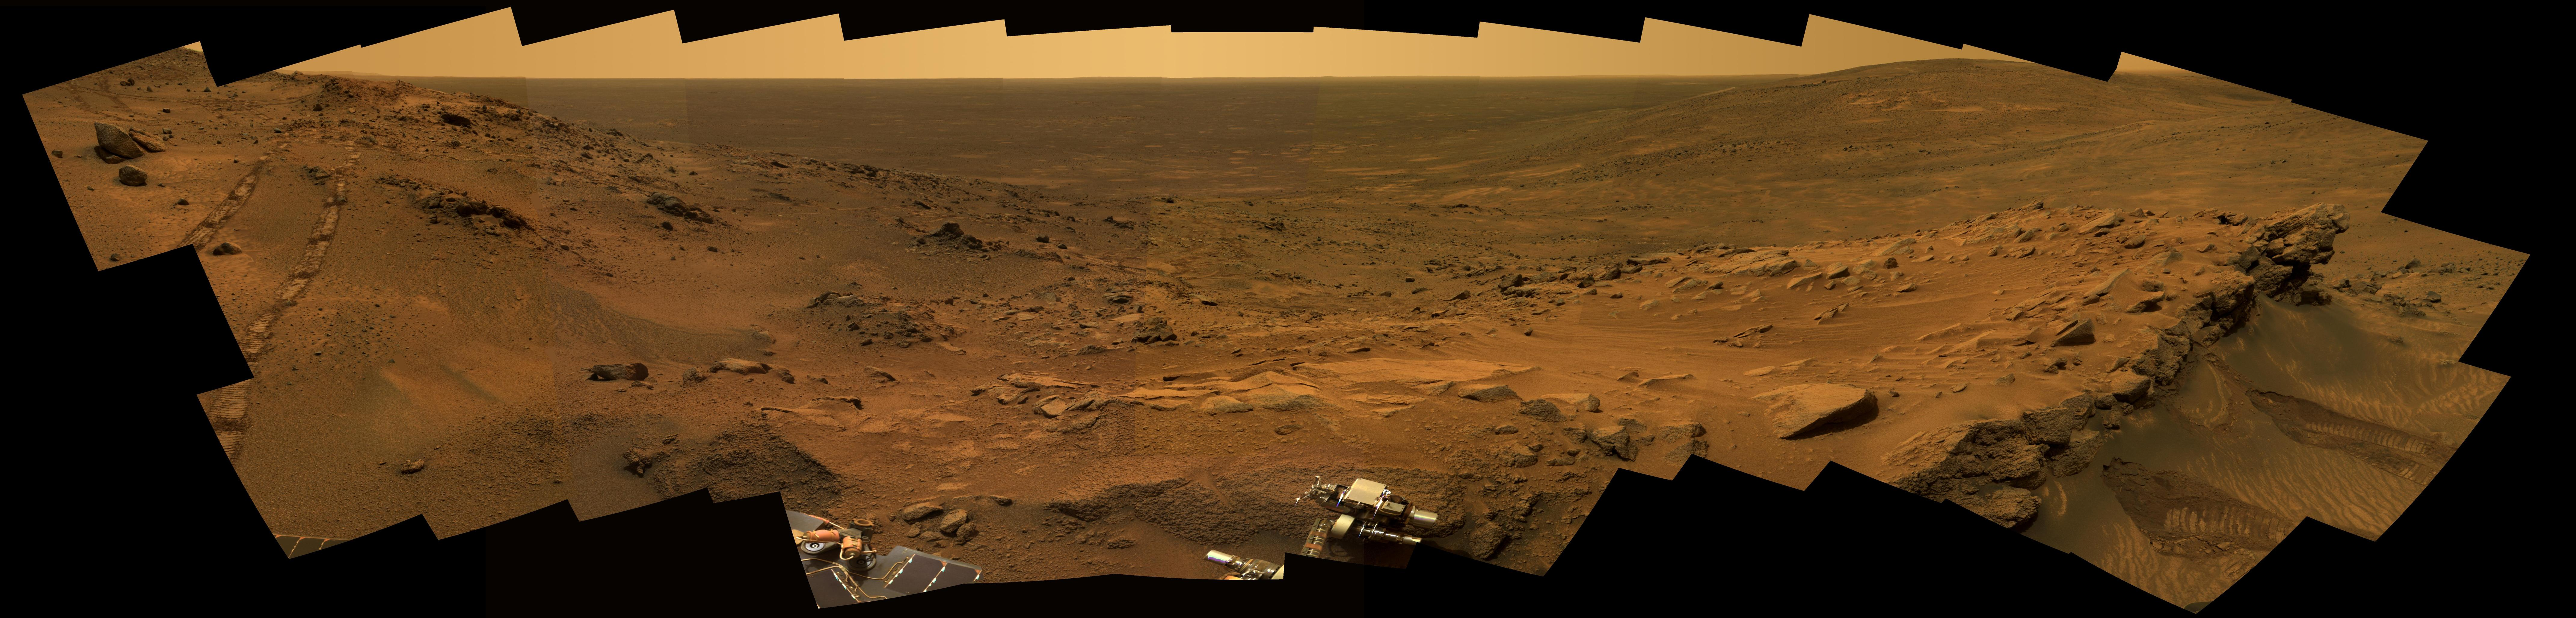 More than 1.5 years into their exploration of Mars, both of NASA's Mars Exploration Rovers continue to send a cornucopia of images to Earth.